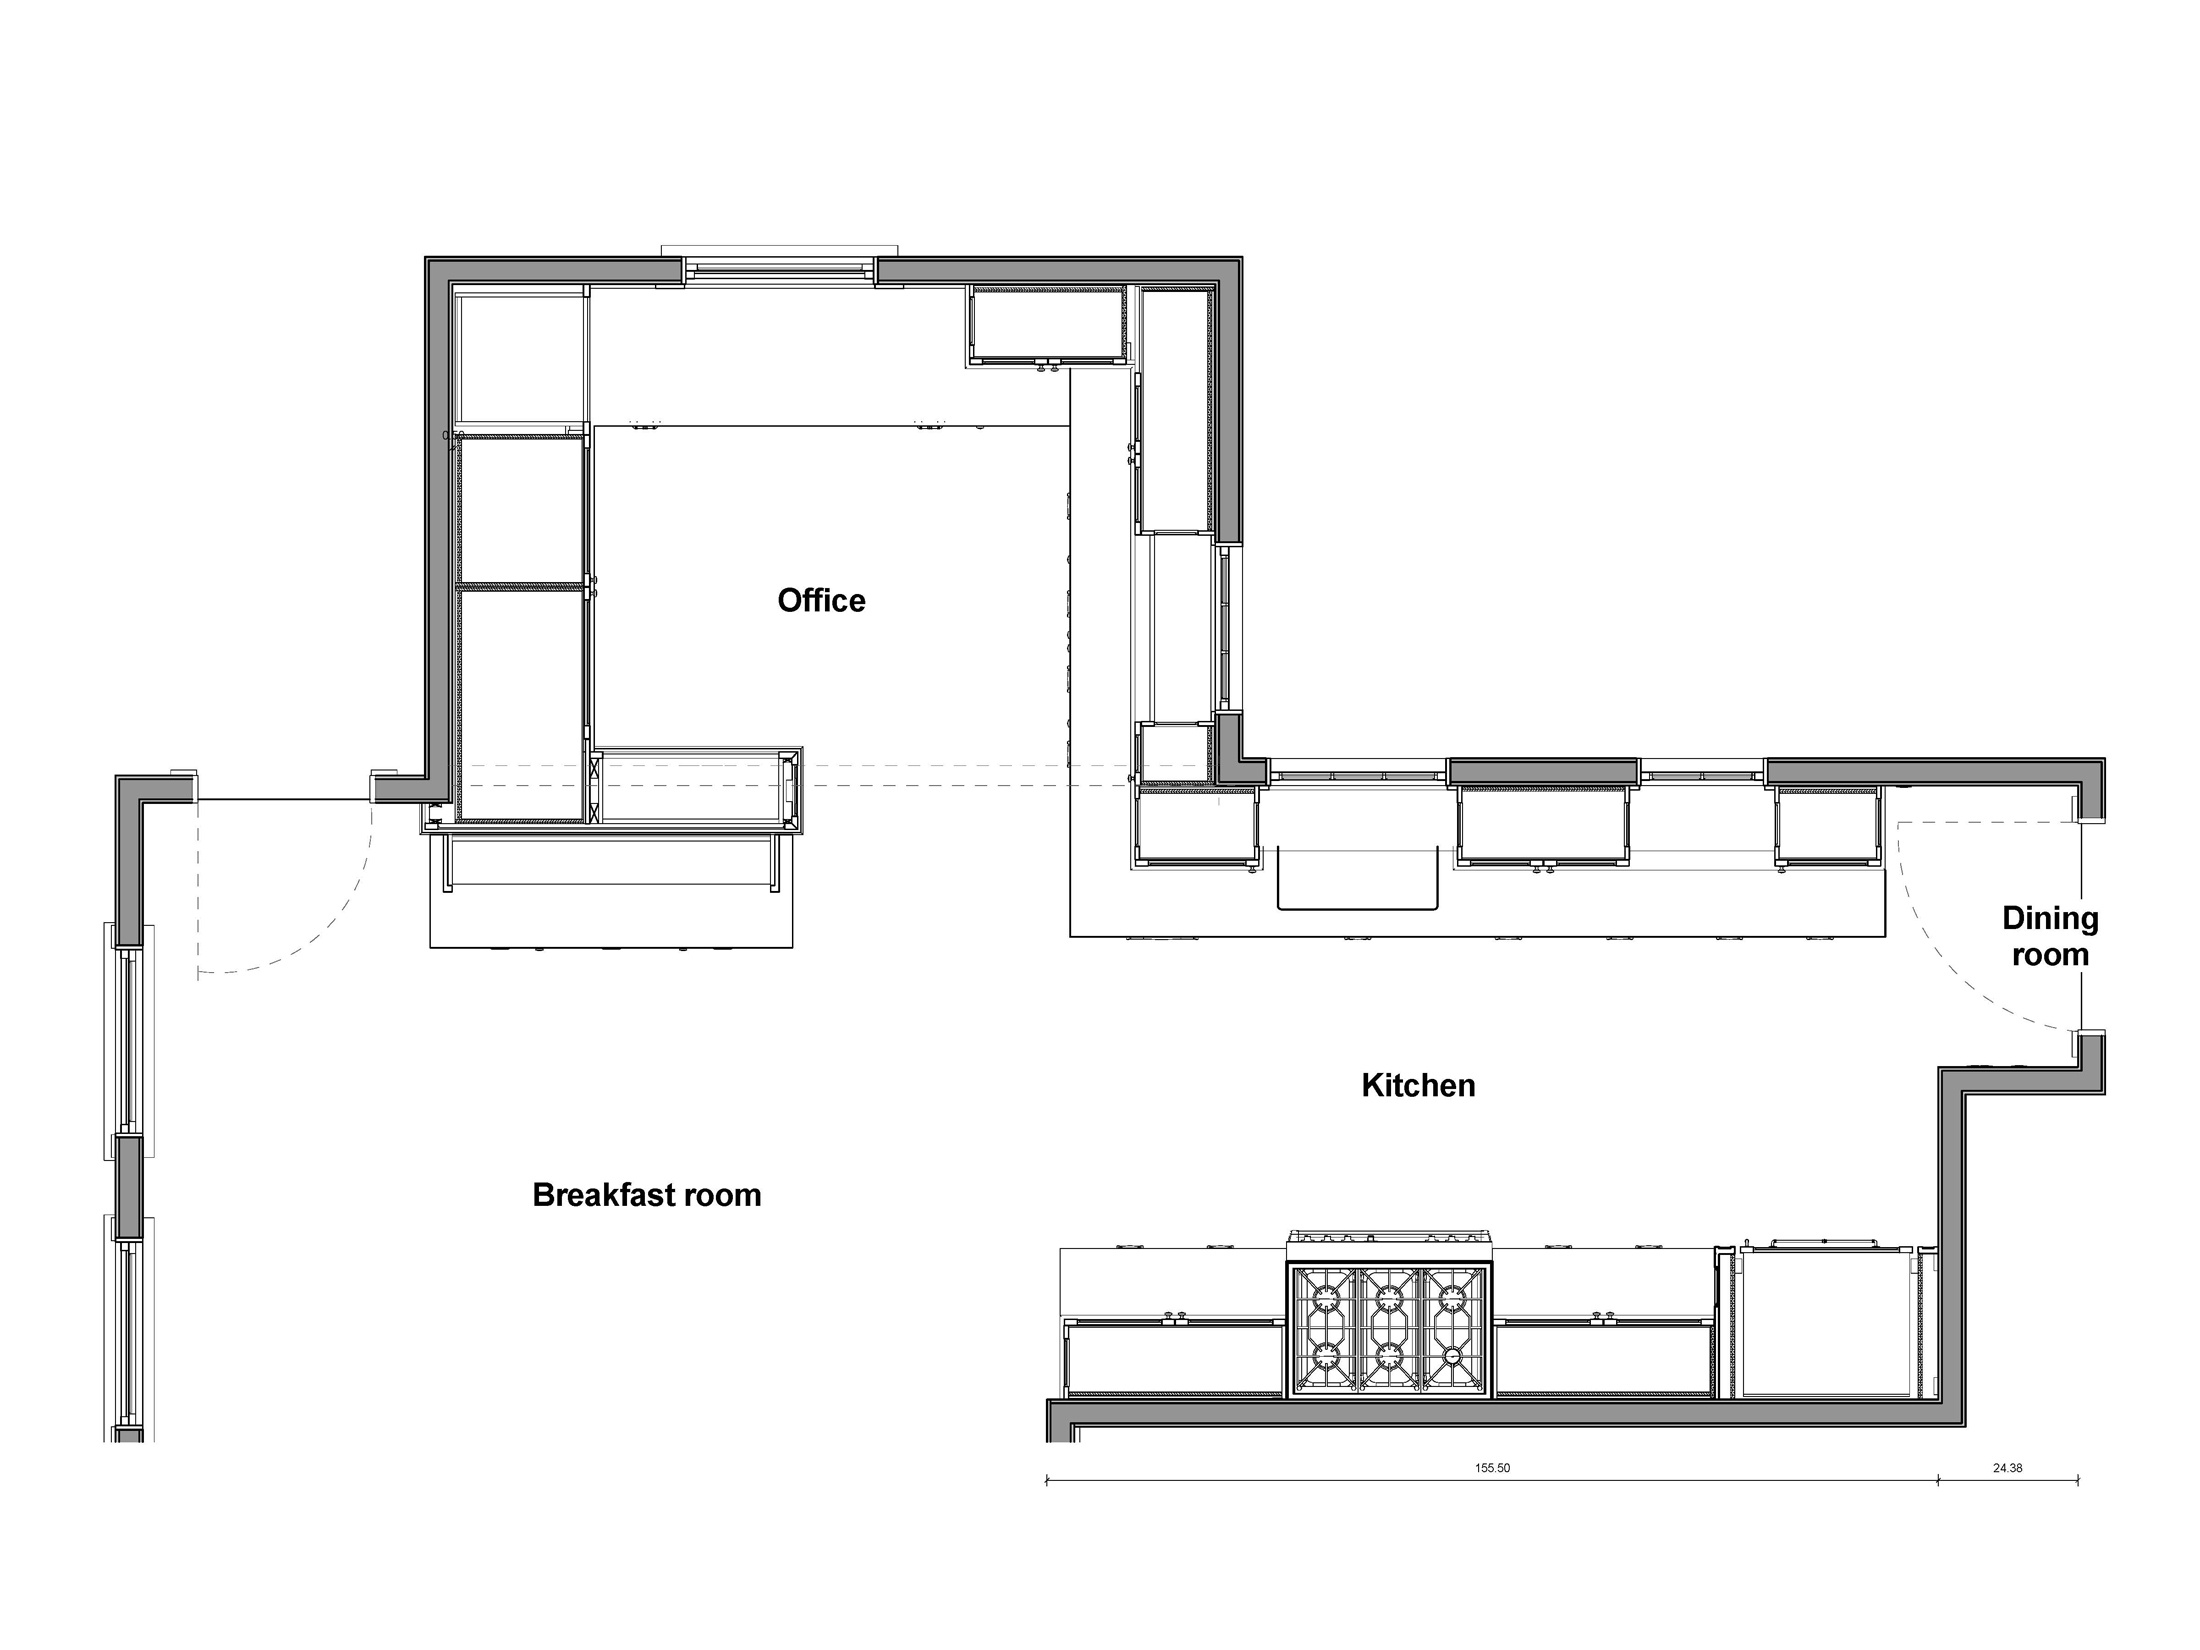 A new kitchen for a historic home a look inside kochman for Draw kitchen floor plan